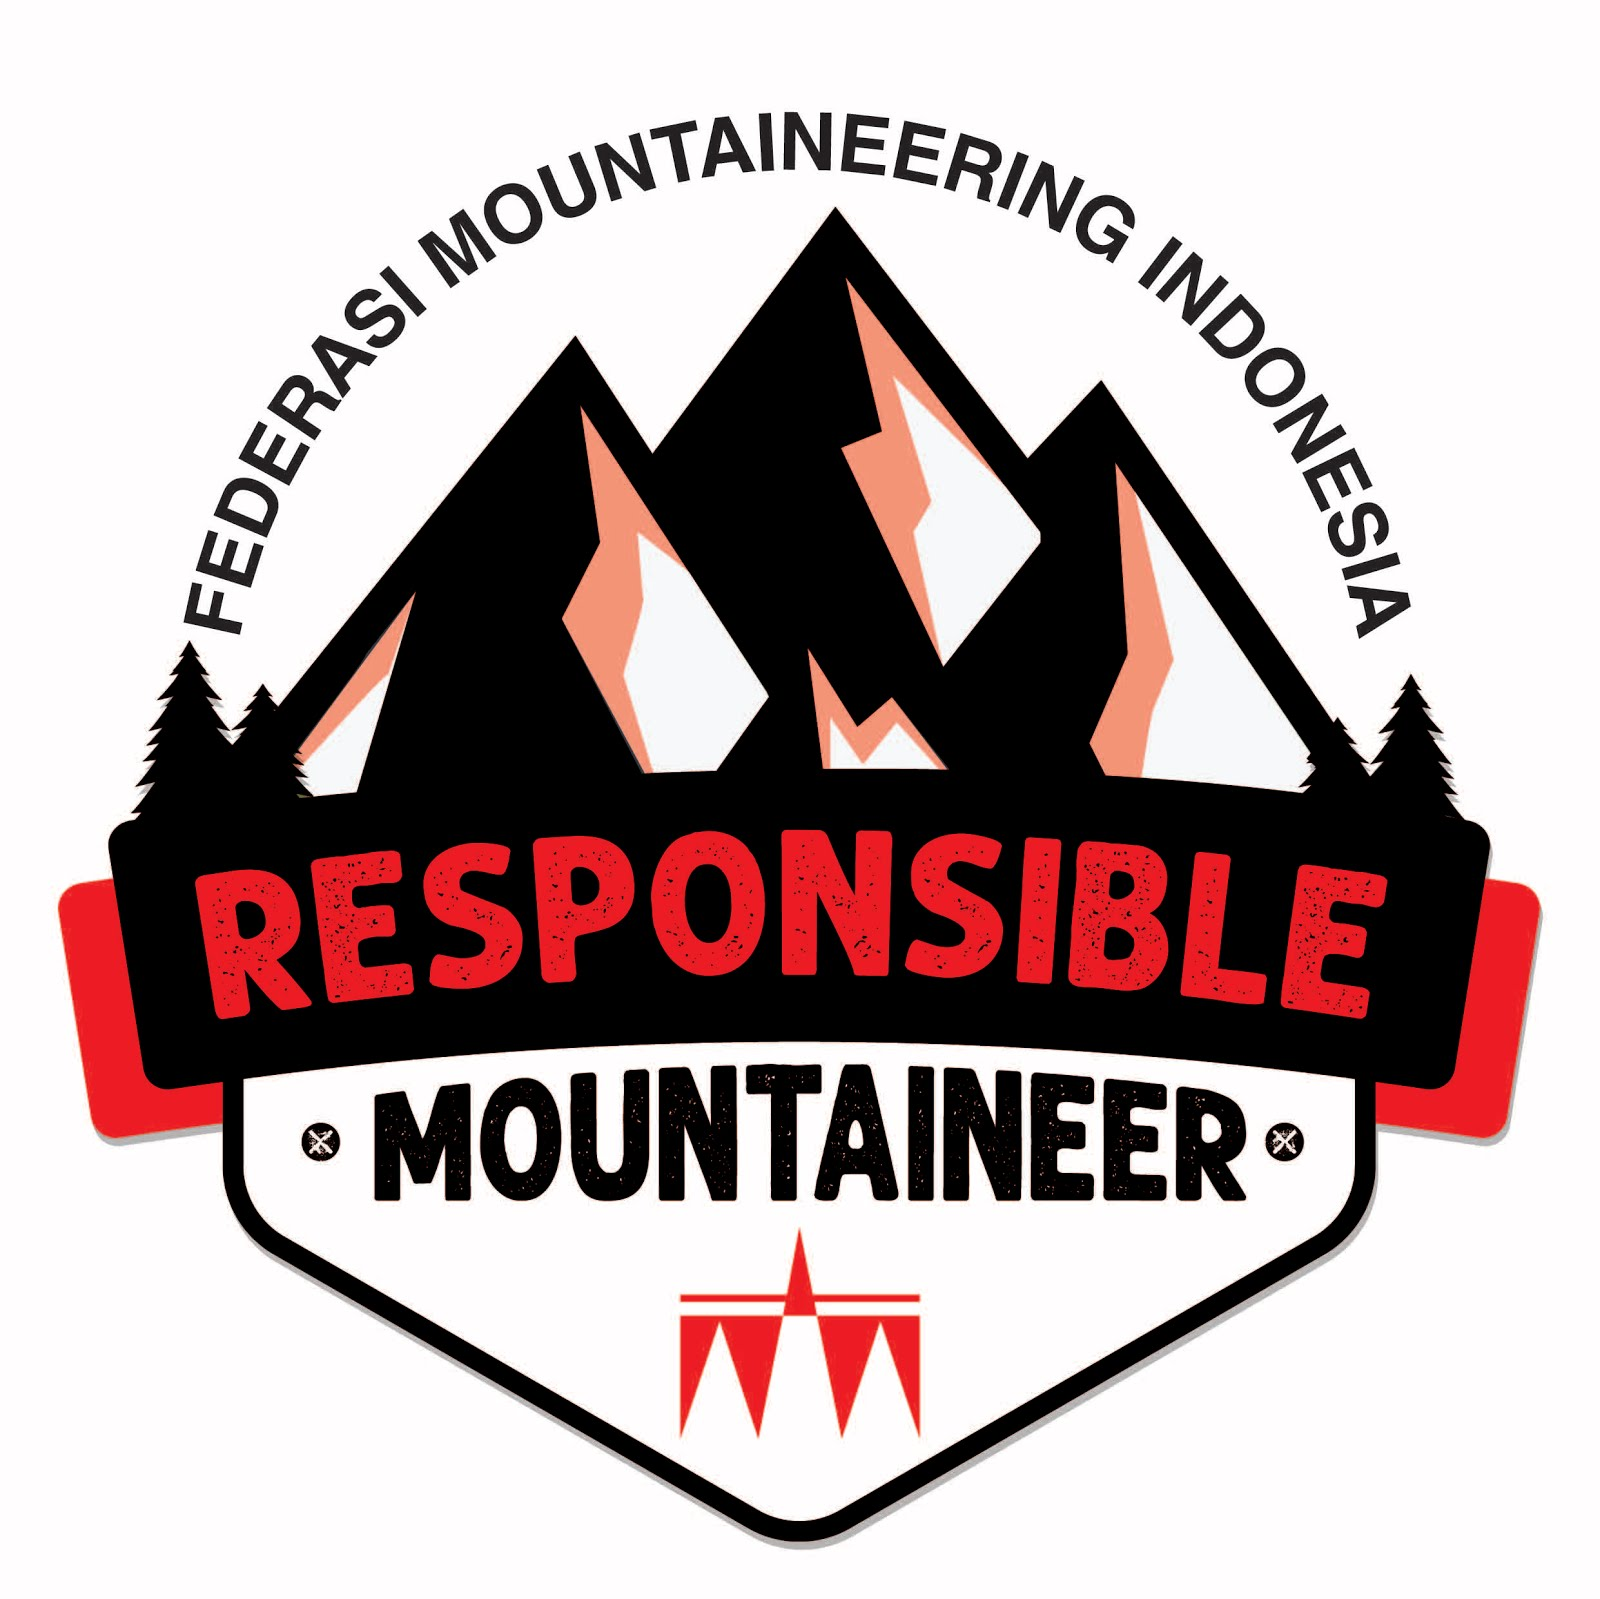 Responsible Mountaineer